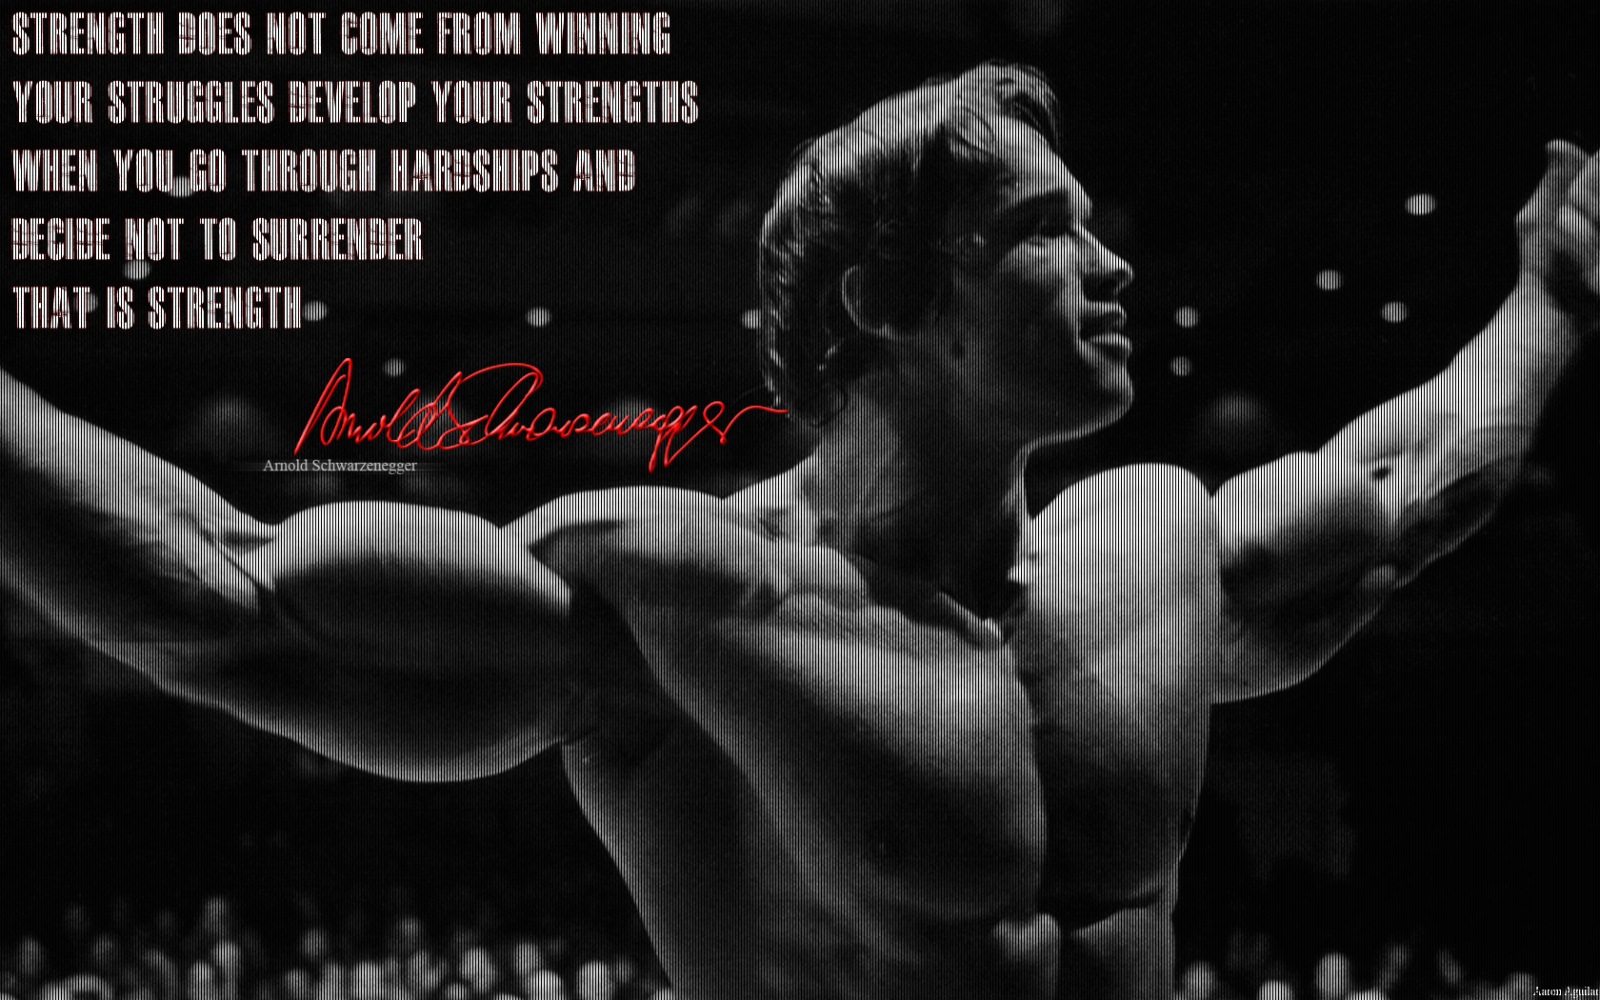 Top Inspirational Strenght Quotes Hd Wallpapers: Motivational Bodybuilding